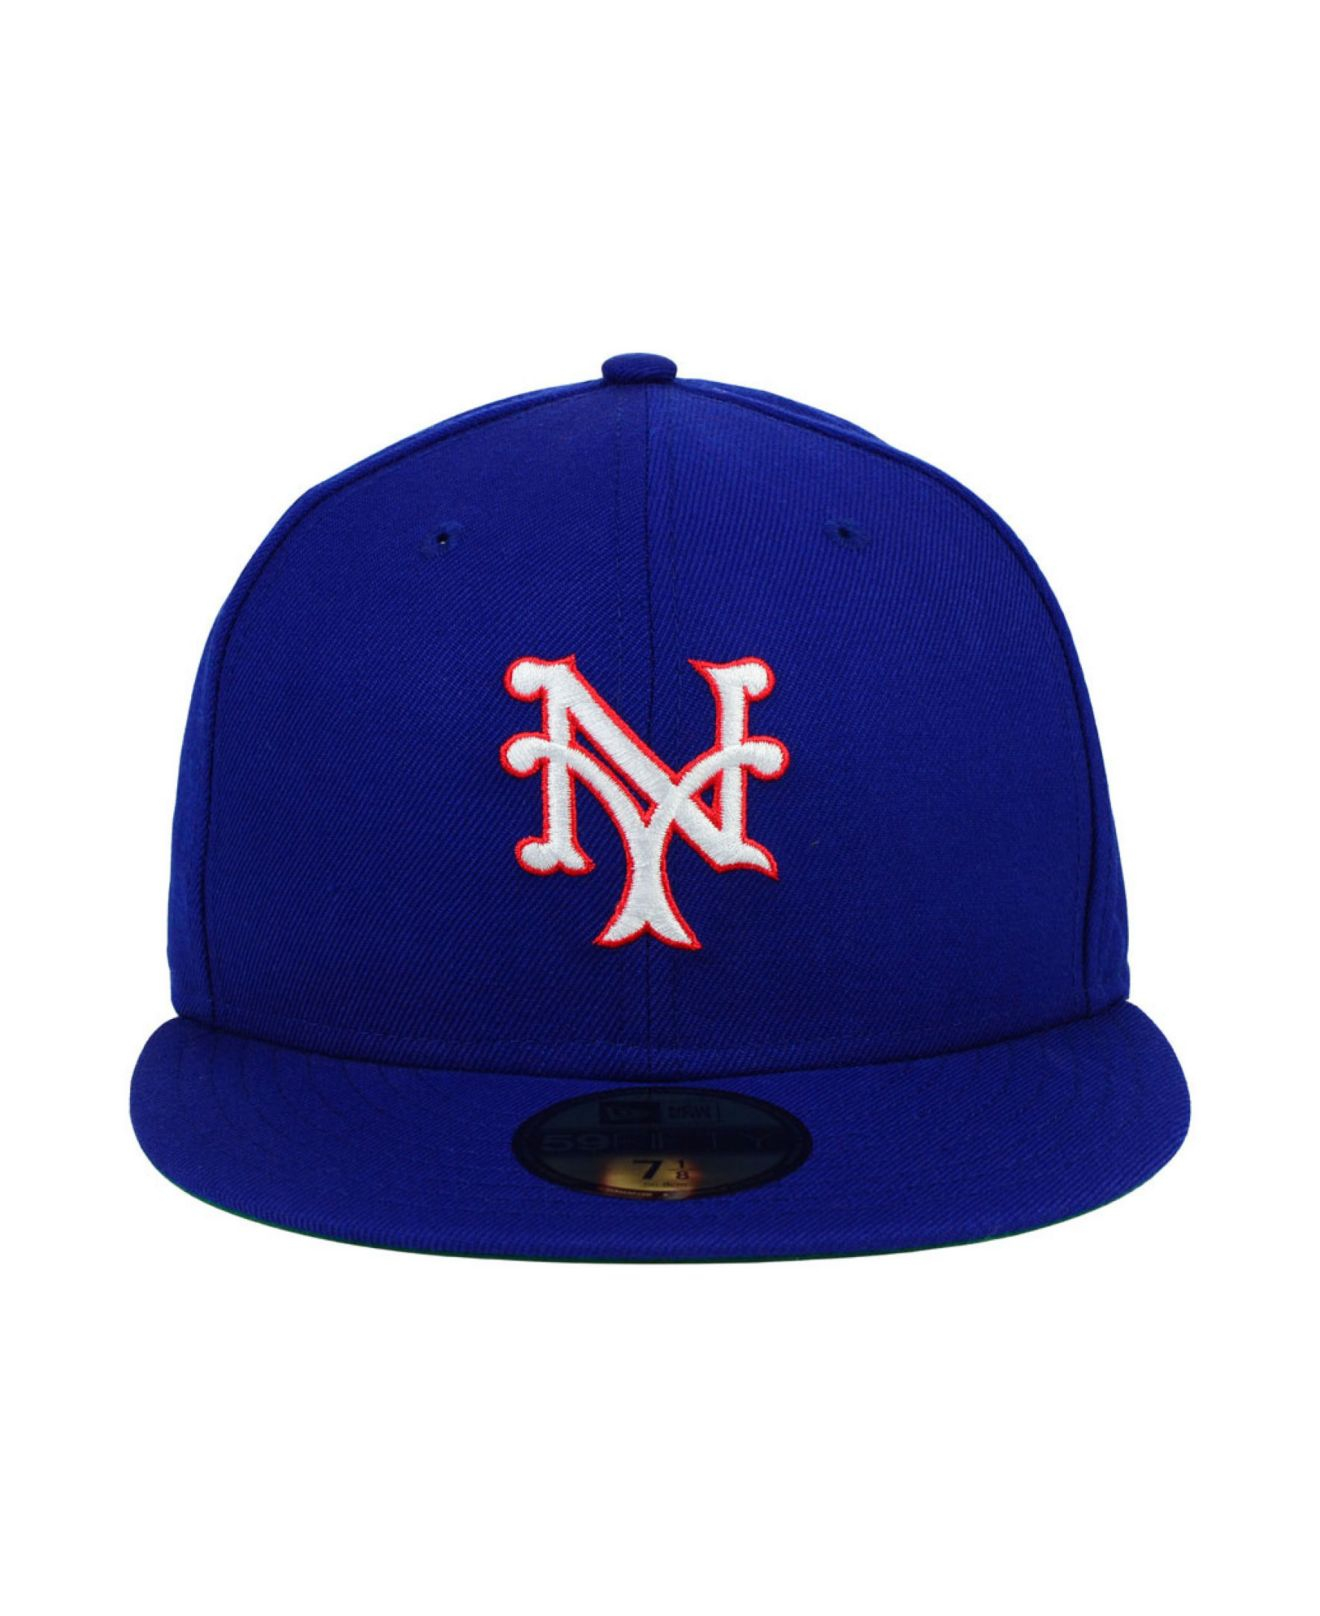 32d6dd97f3c74 shopping new york giants 1947 1957 hat mickeys place 0d1aa ecb45; amazon  lyst ktz new york giants mlb cooperstown 59fifty cap in blue for men 1319a  e4cbb